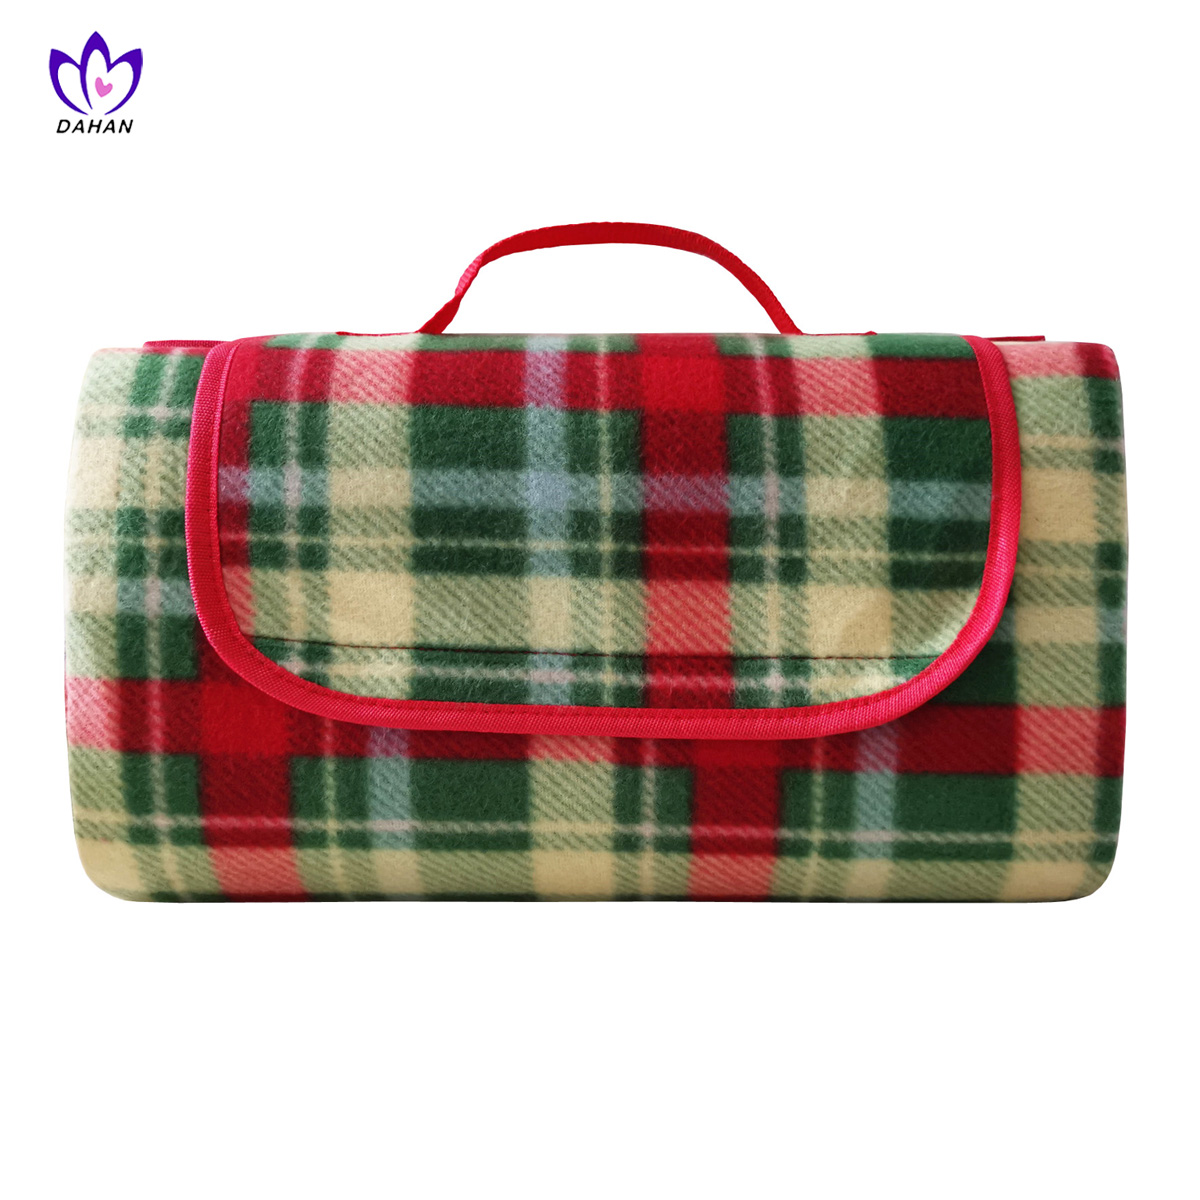 Picnic blanket waterproof picnic mat with printing.PC23